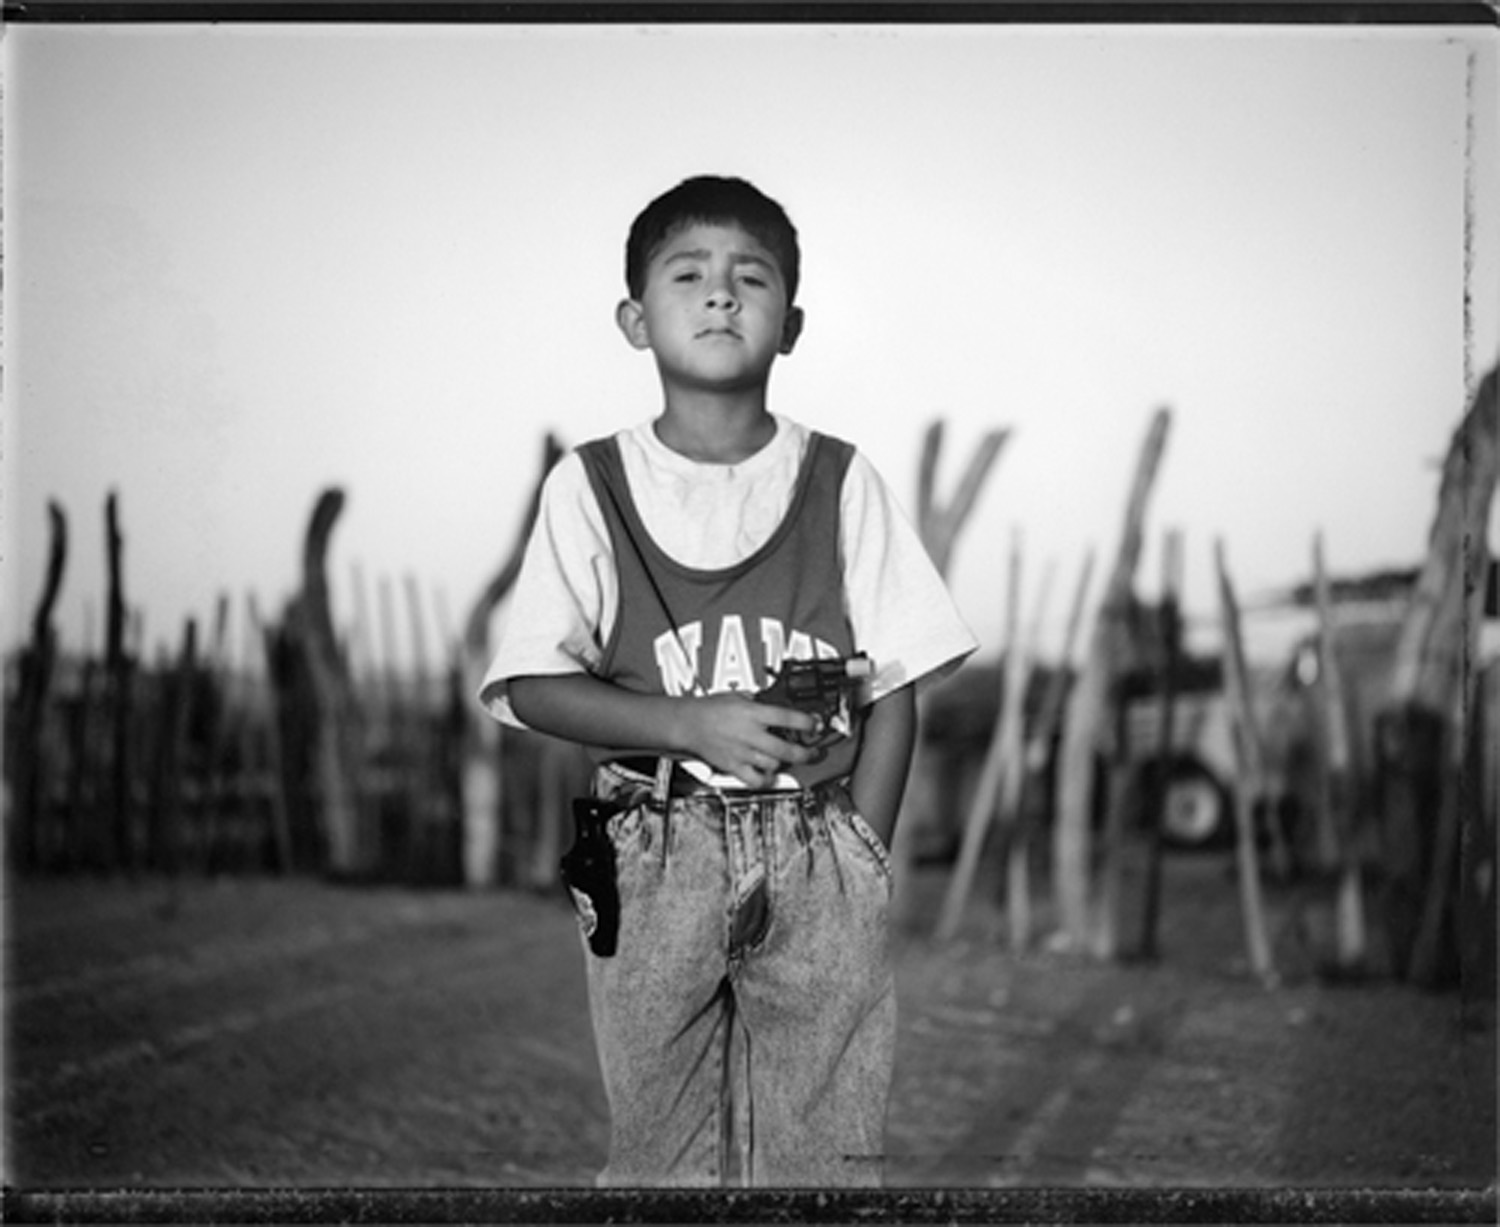 Boy with toy gun, border town, Mexico, 1993